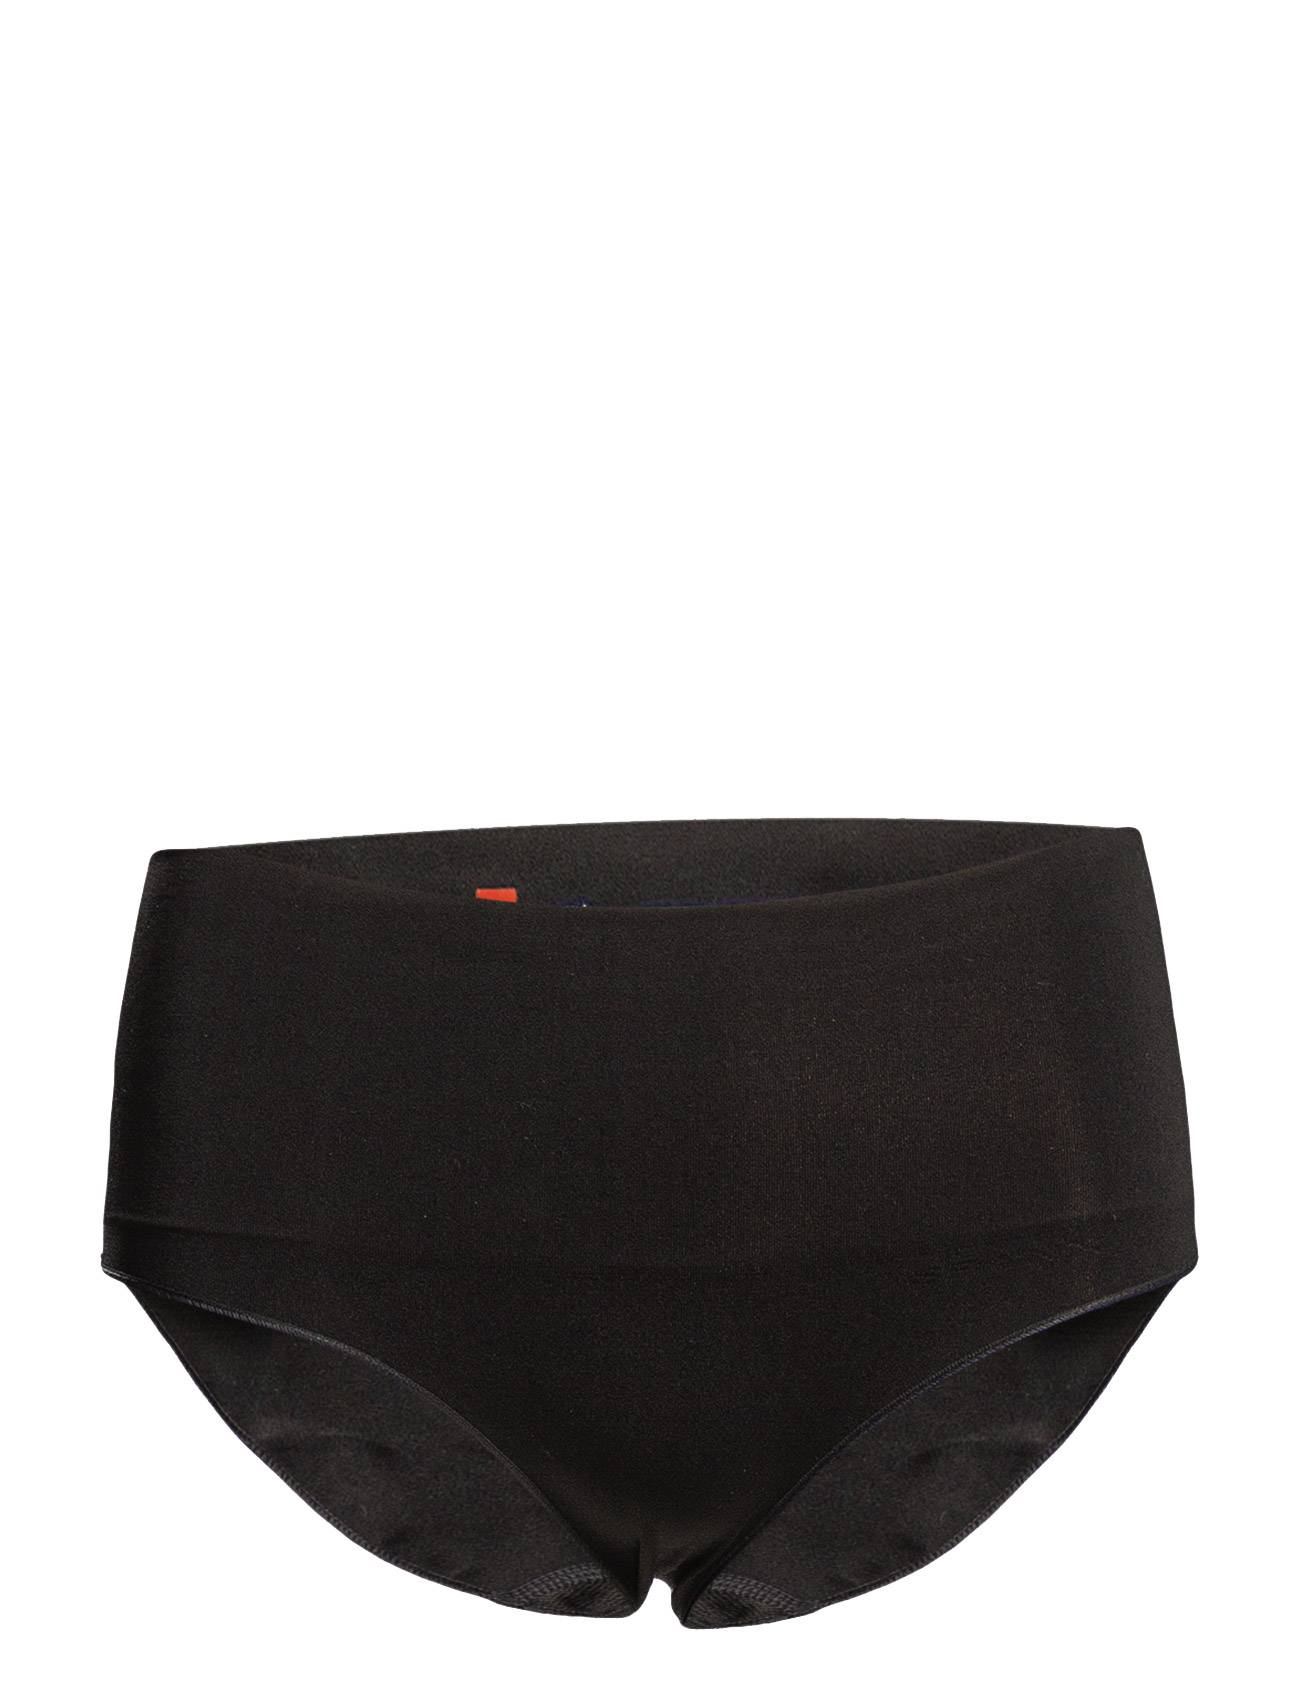 Spanx Brief Everyday Shaping Pan